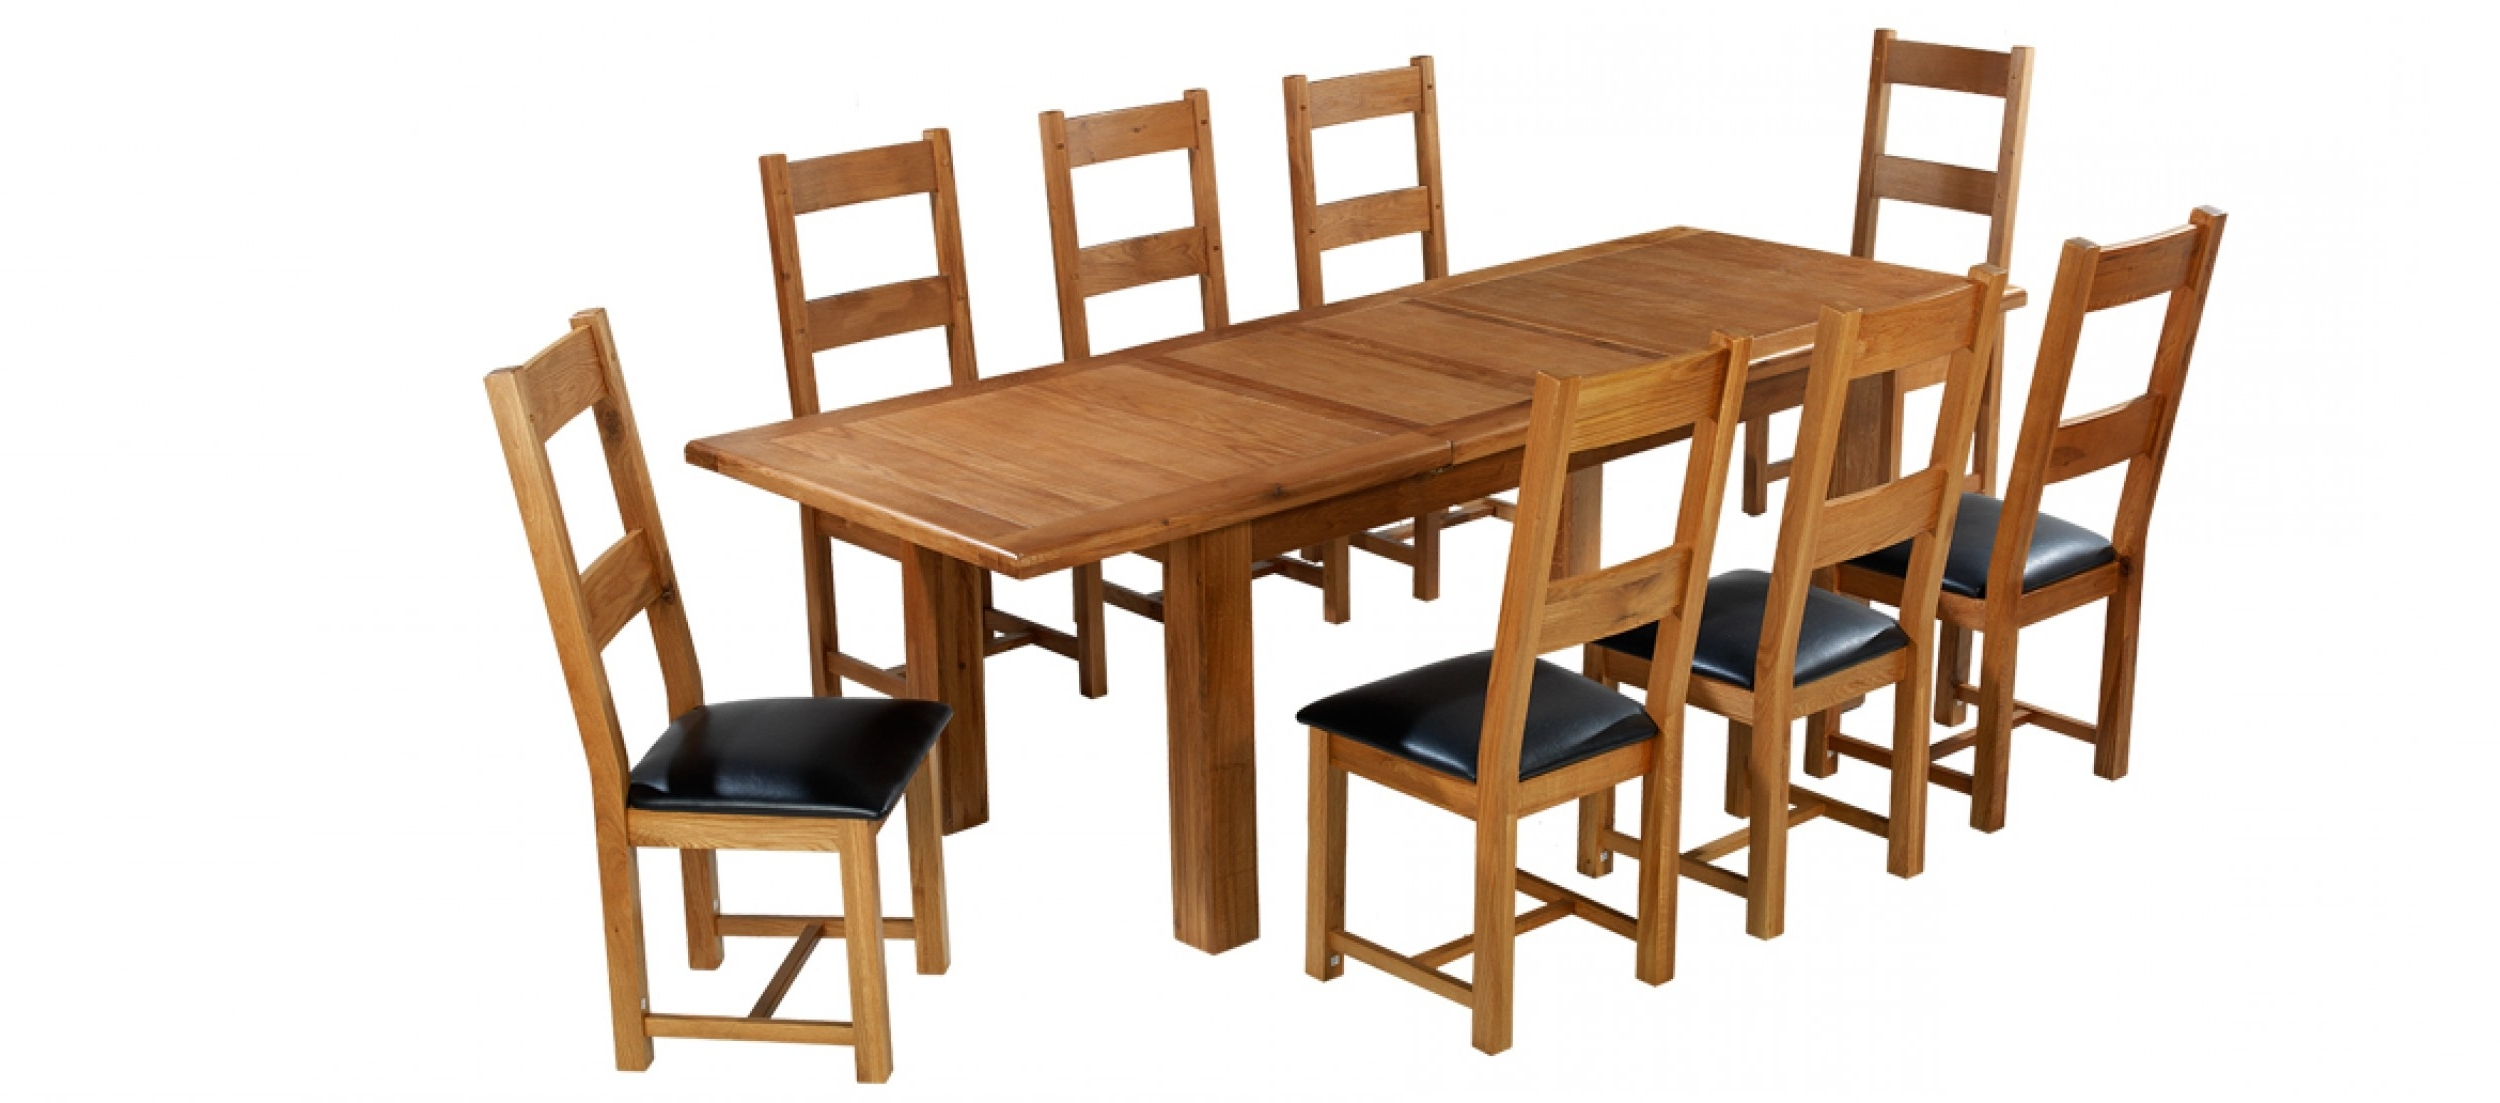 Oak Extending Dining Tables And 8 Chairs Inside 2018 Barham Oak 180 250 Cm Extending Dining Table And 8 Chairs (View 14 of 25)